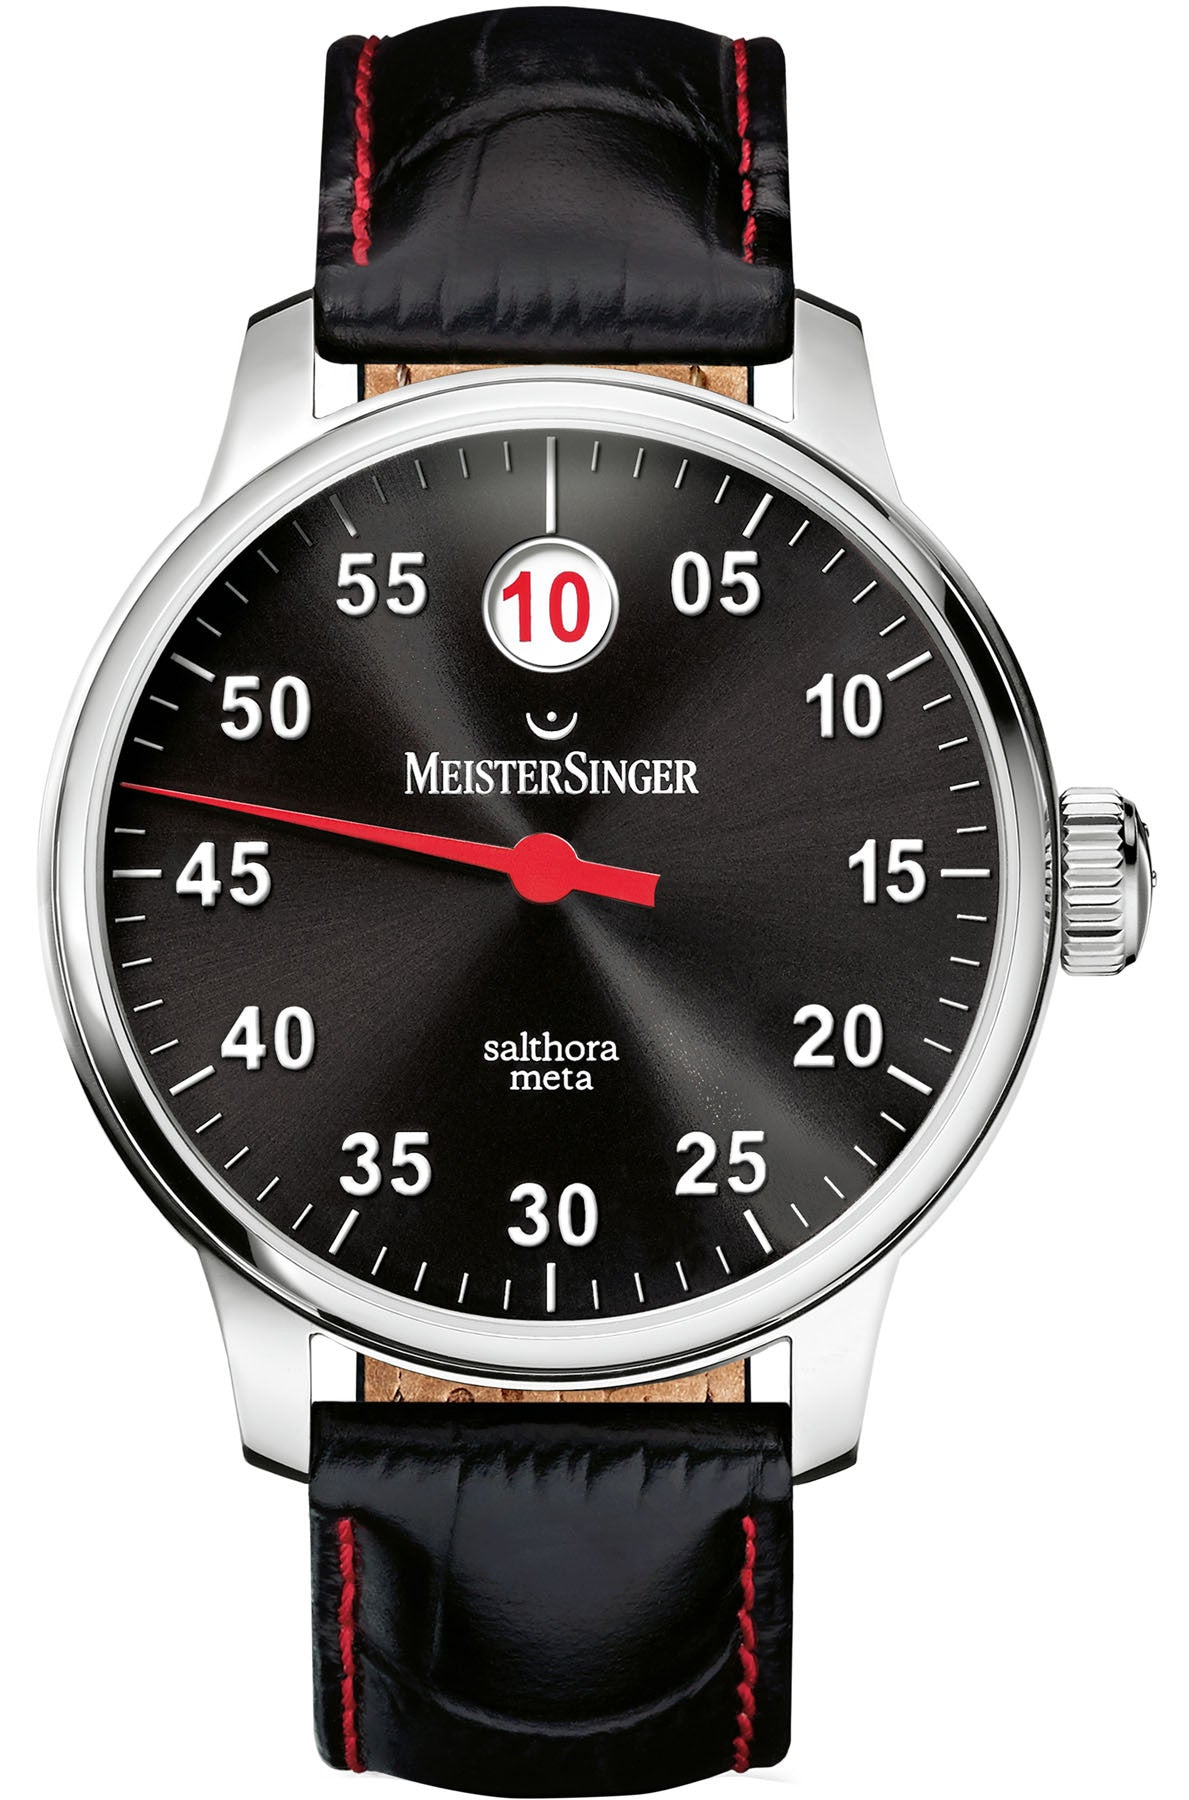 MeisterSinger Watch Salthora Meta